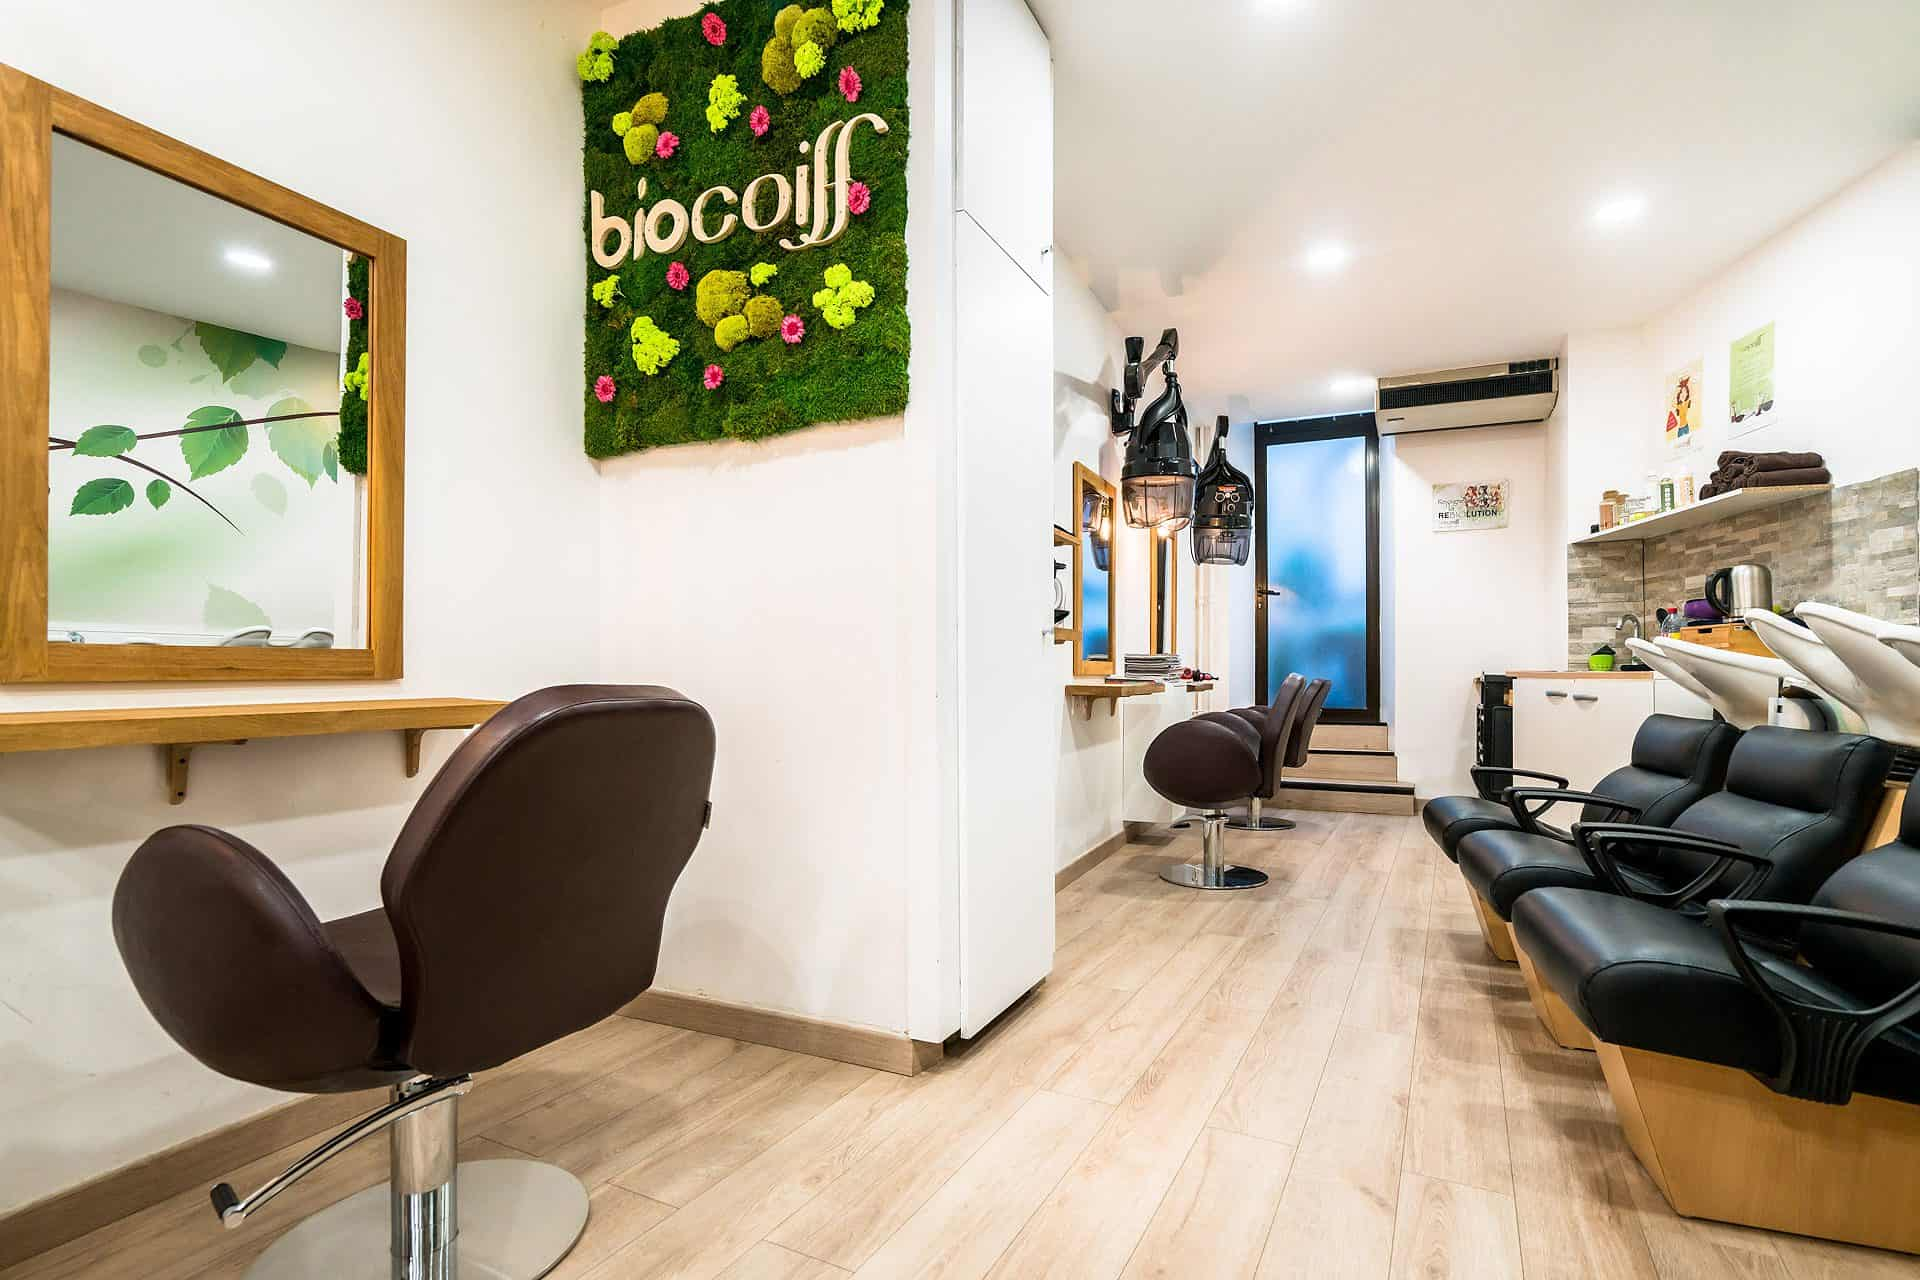 coiffeur saint germain